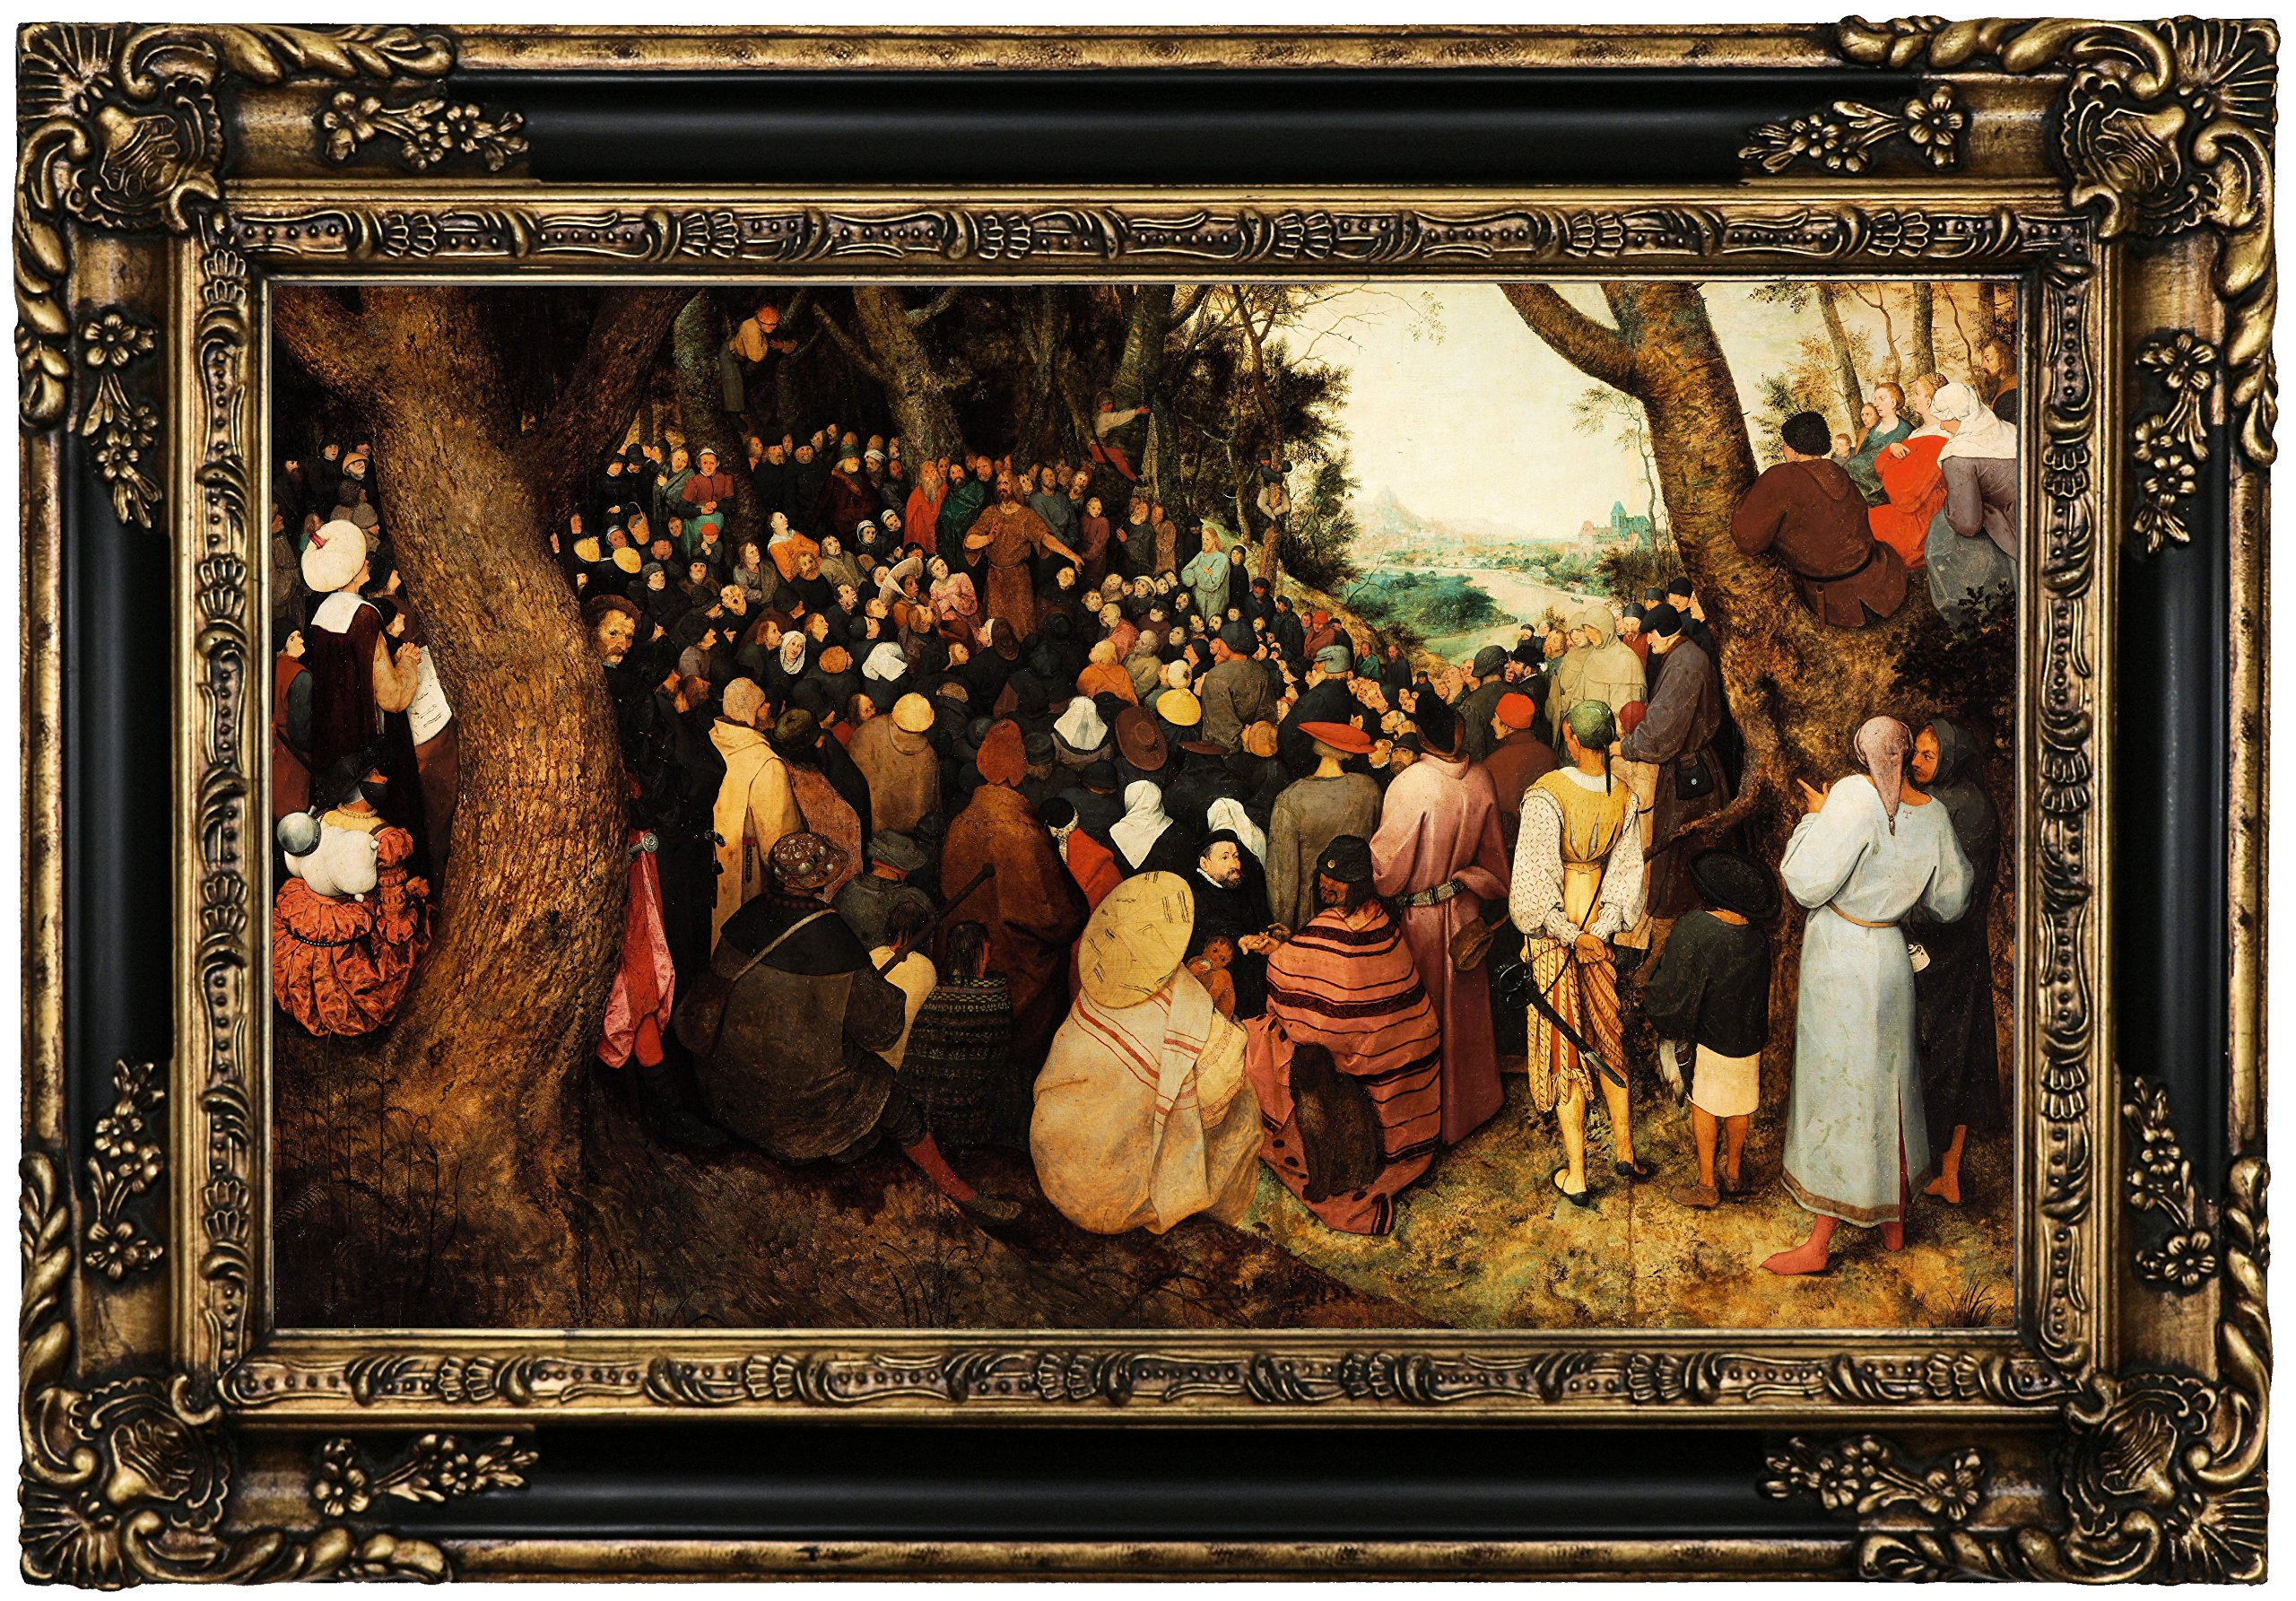 Historic Art Gallery the Sermon of Saint John the Baptist 1566 by Pieter Brueghel the Elder Framed Canvas Print, 12'' x 20'', Gold and Black Gallery by Historic Art Gallery